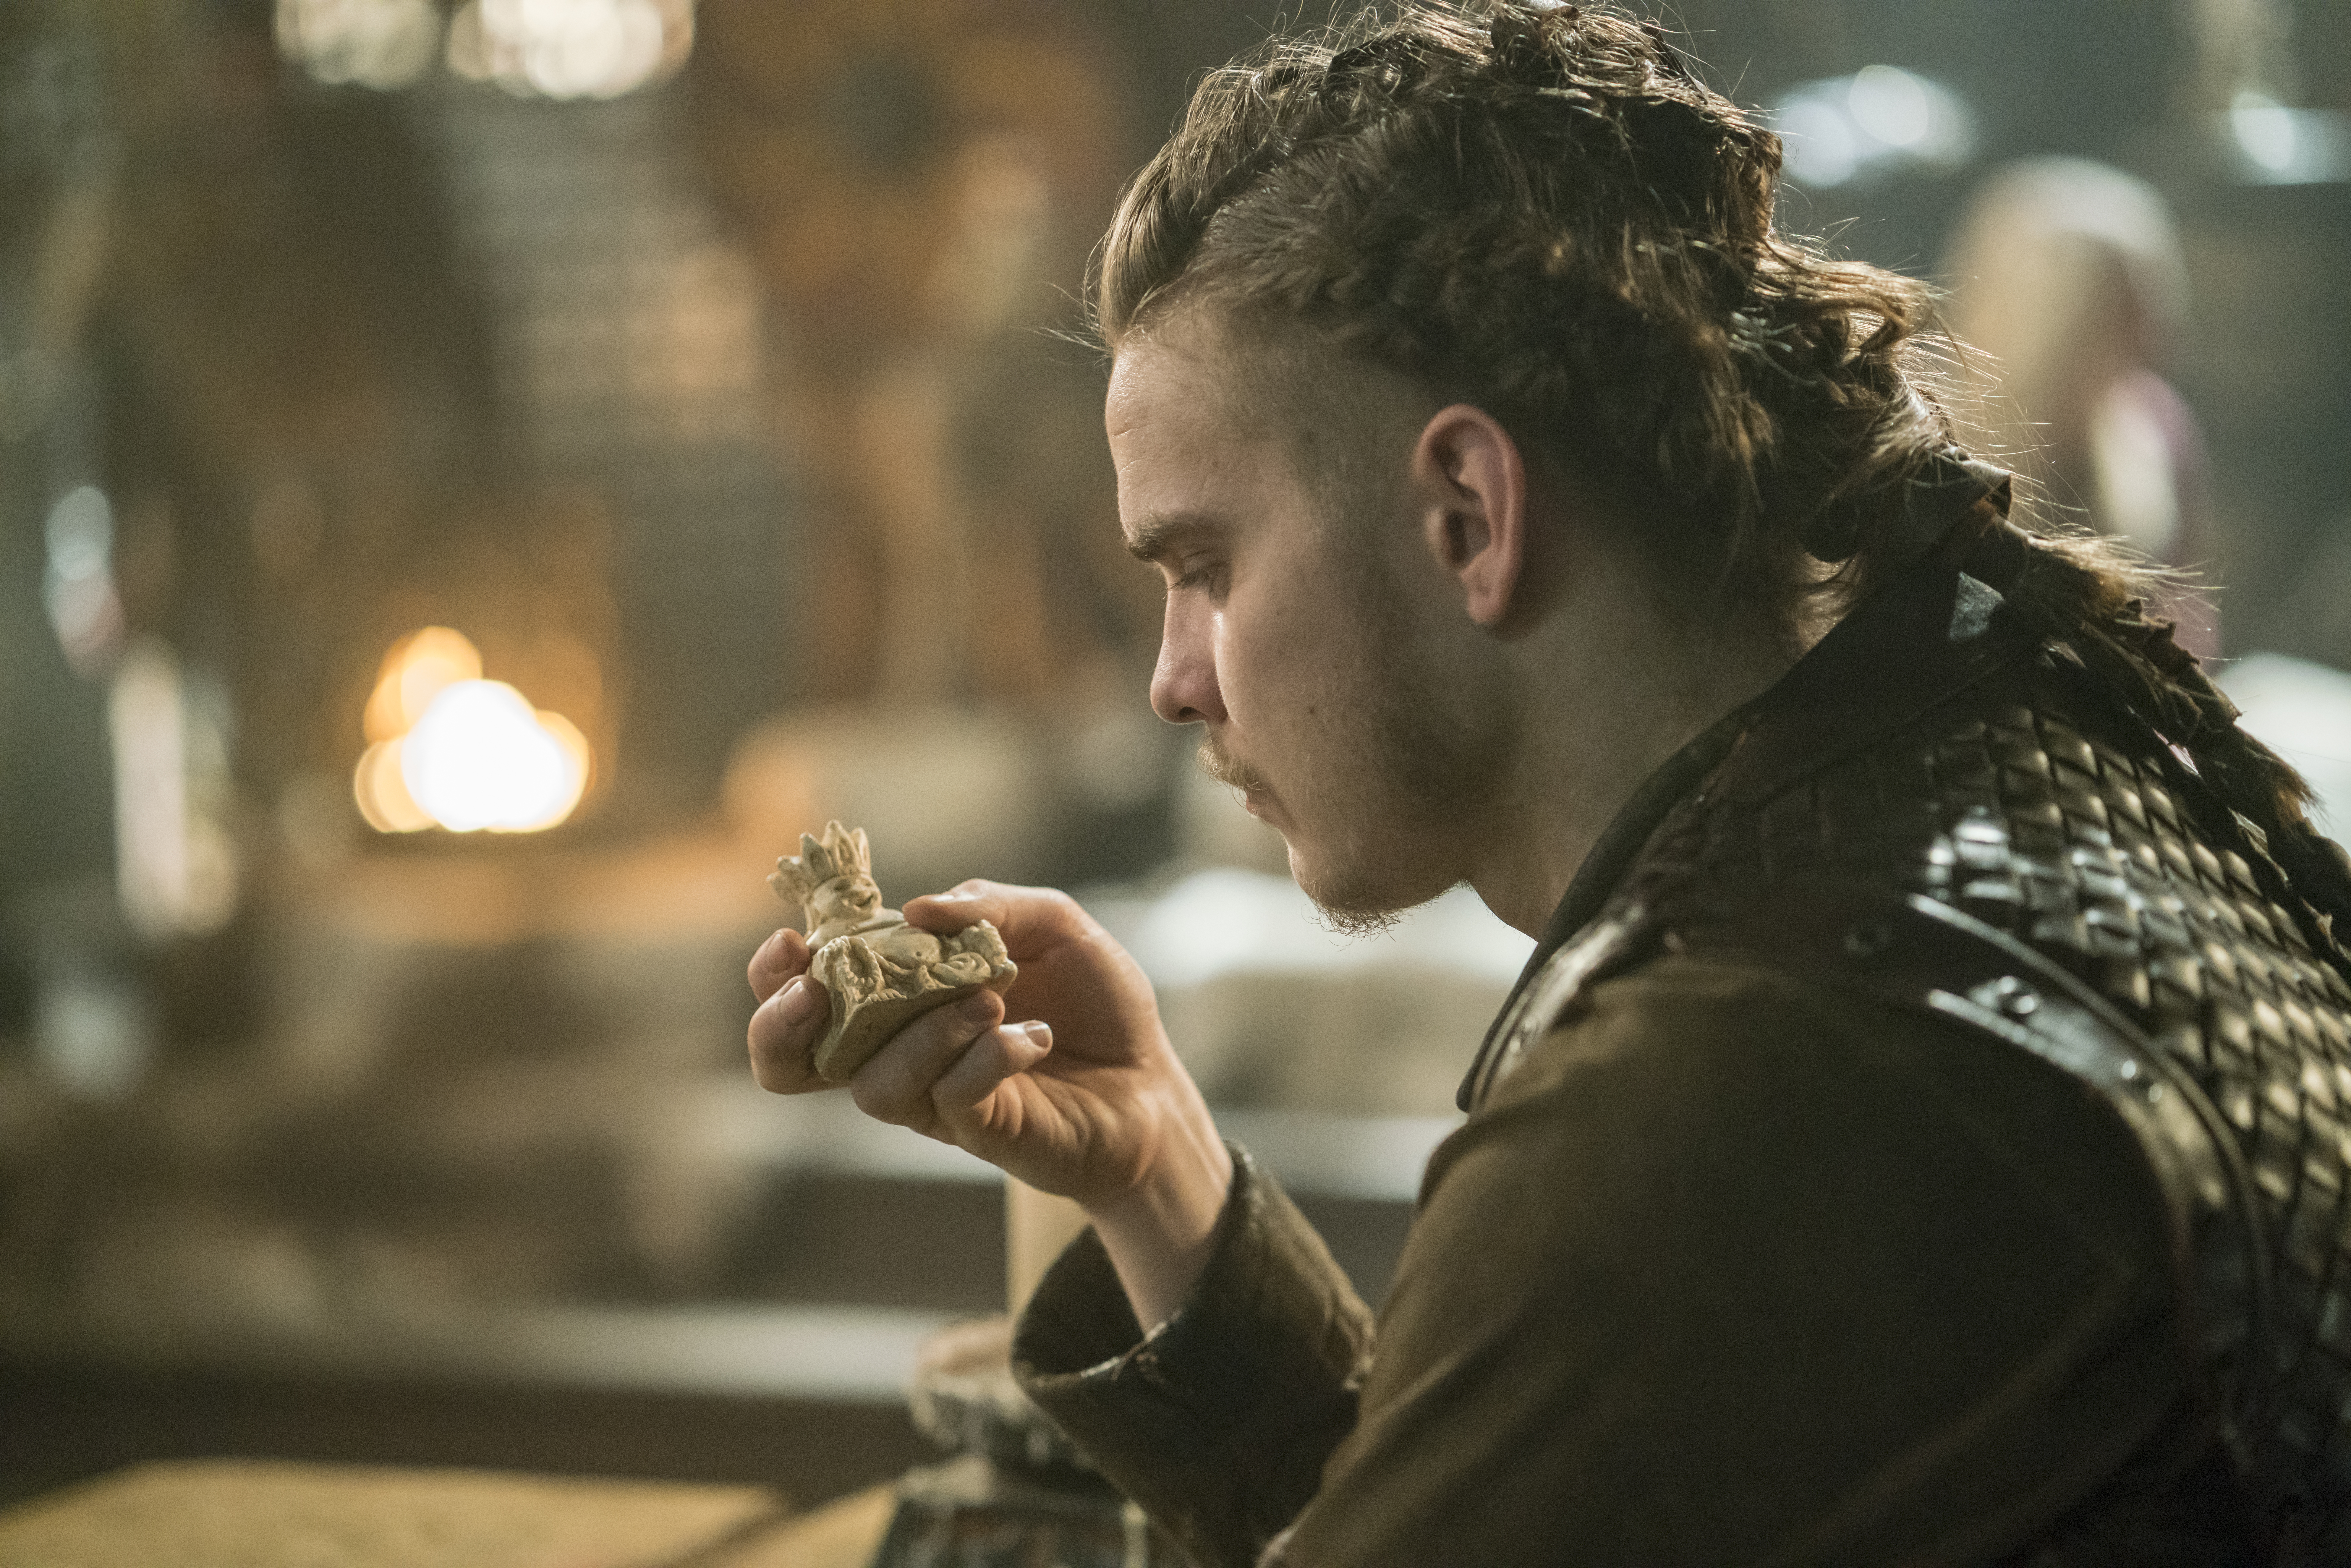 Vikings recap: Can Judith ever forgive Aethelred for the